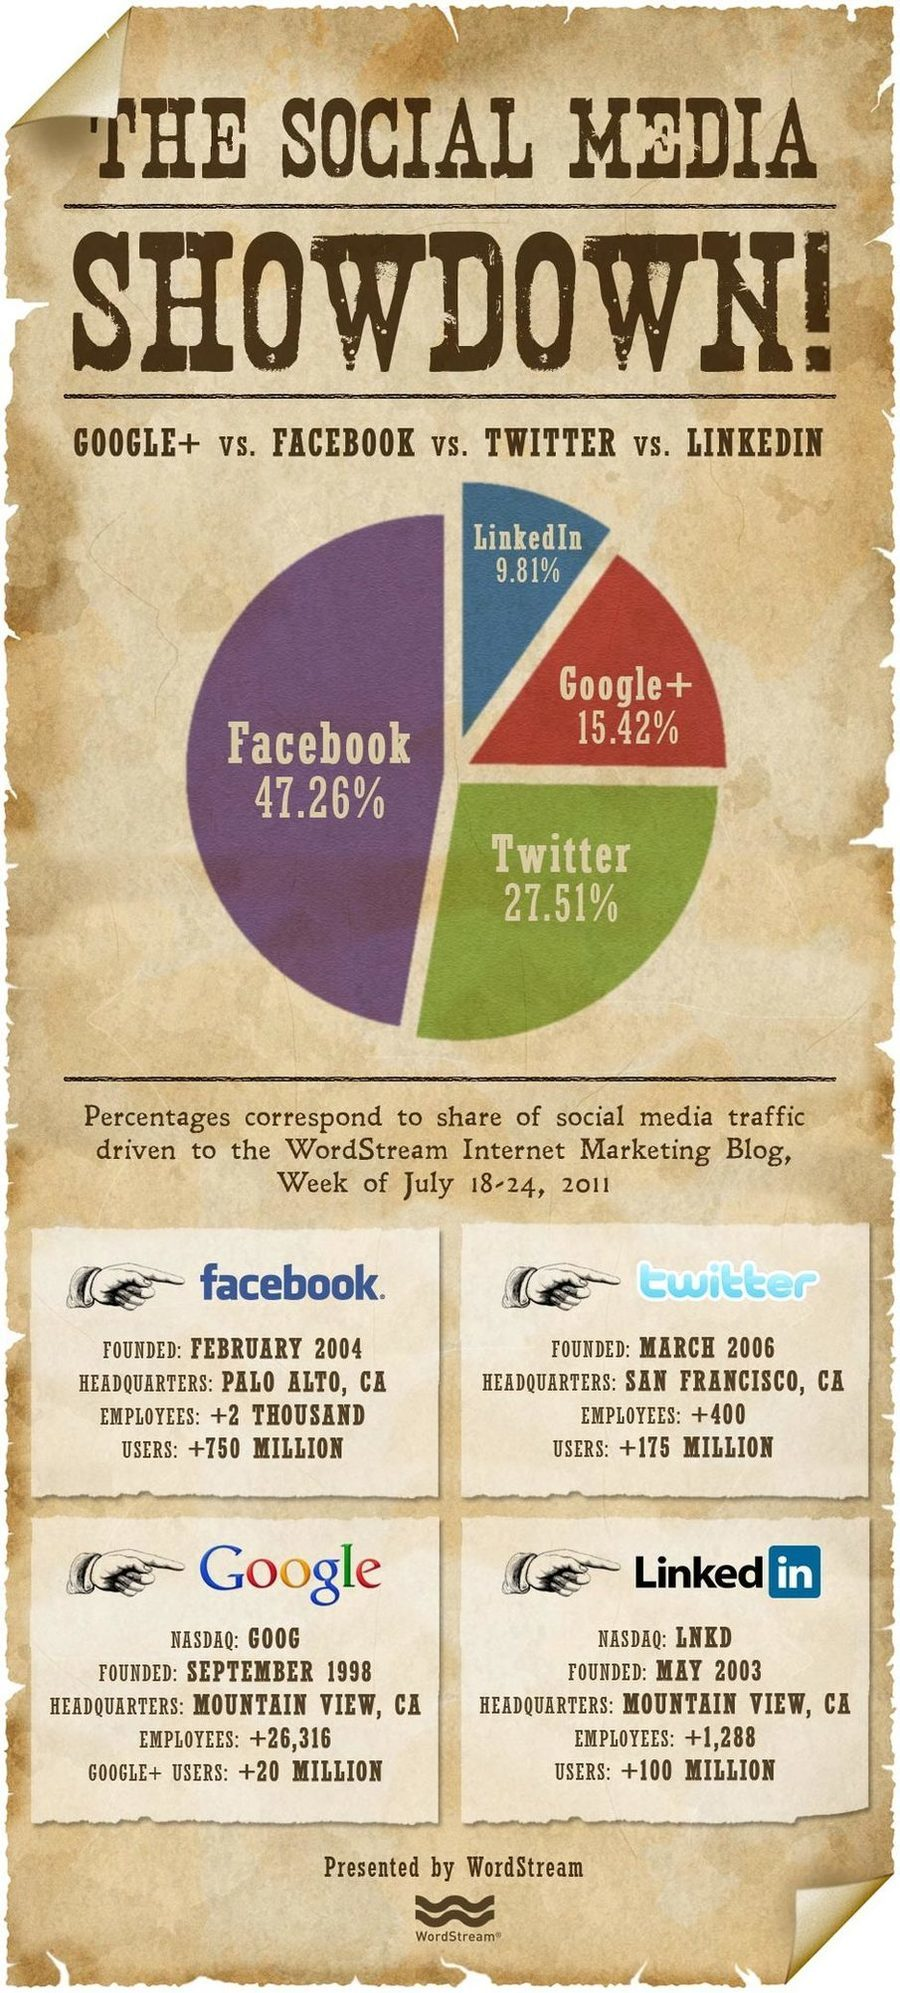 Google+ vs Facebook vs. Twitter vs. LinkedIn - The Social Media Showdown [ infographic ]